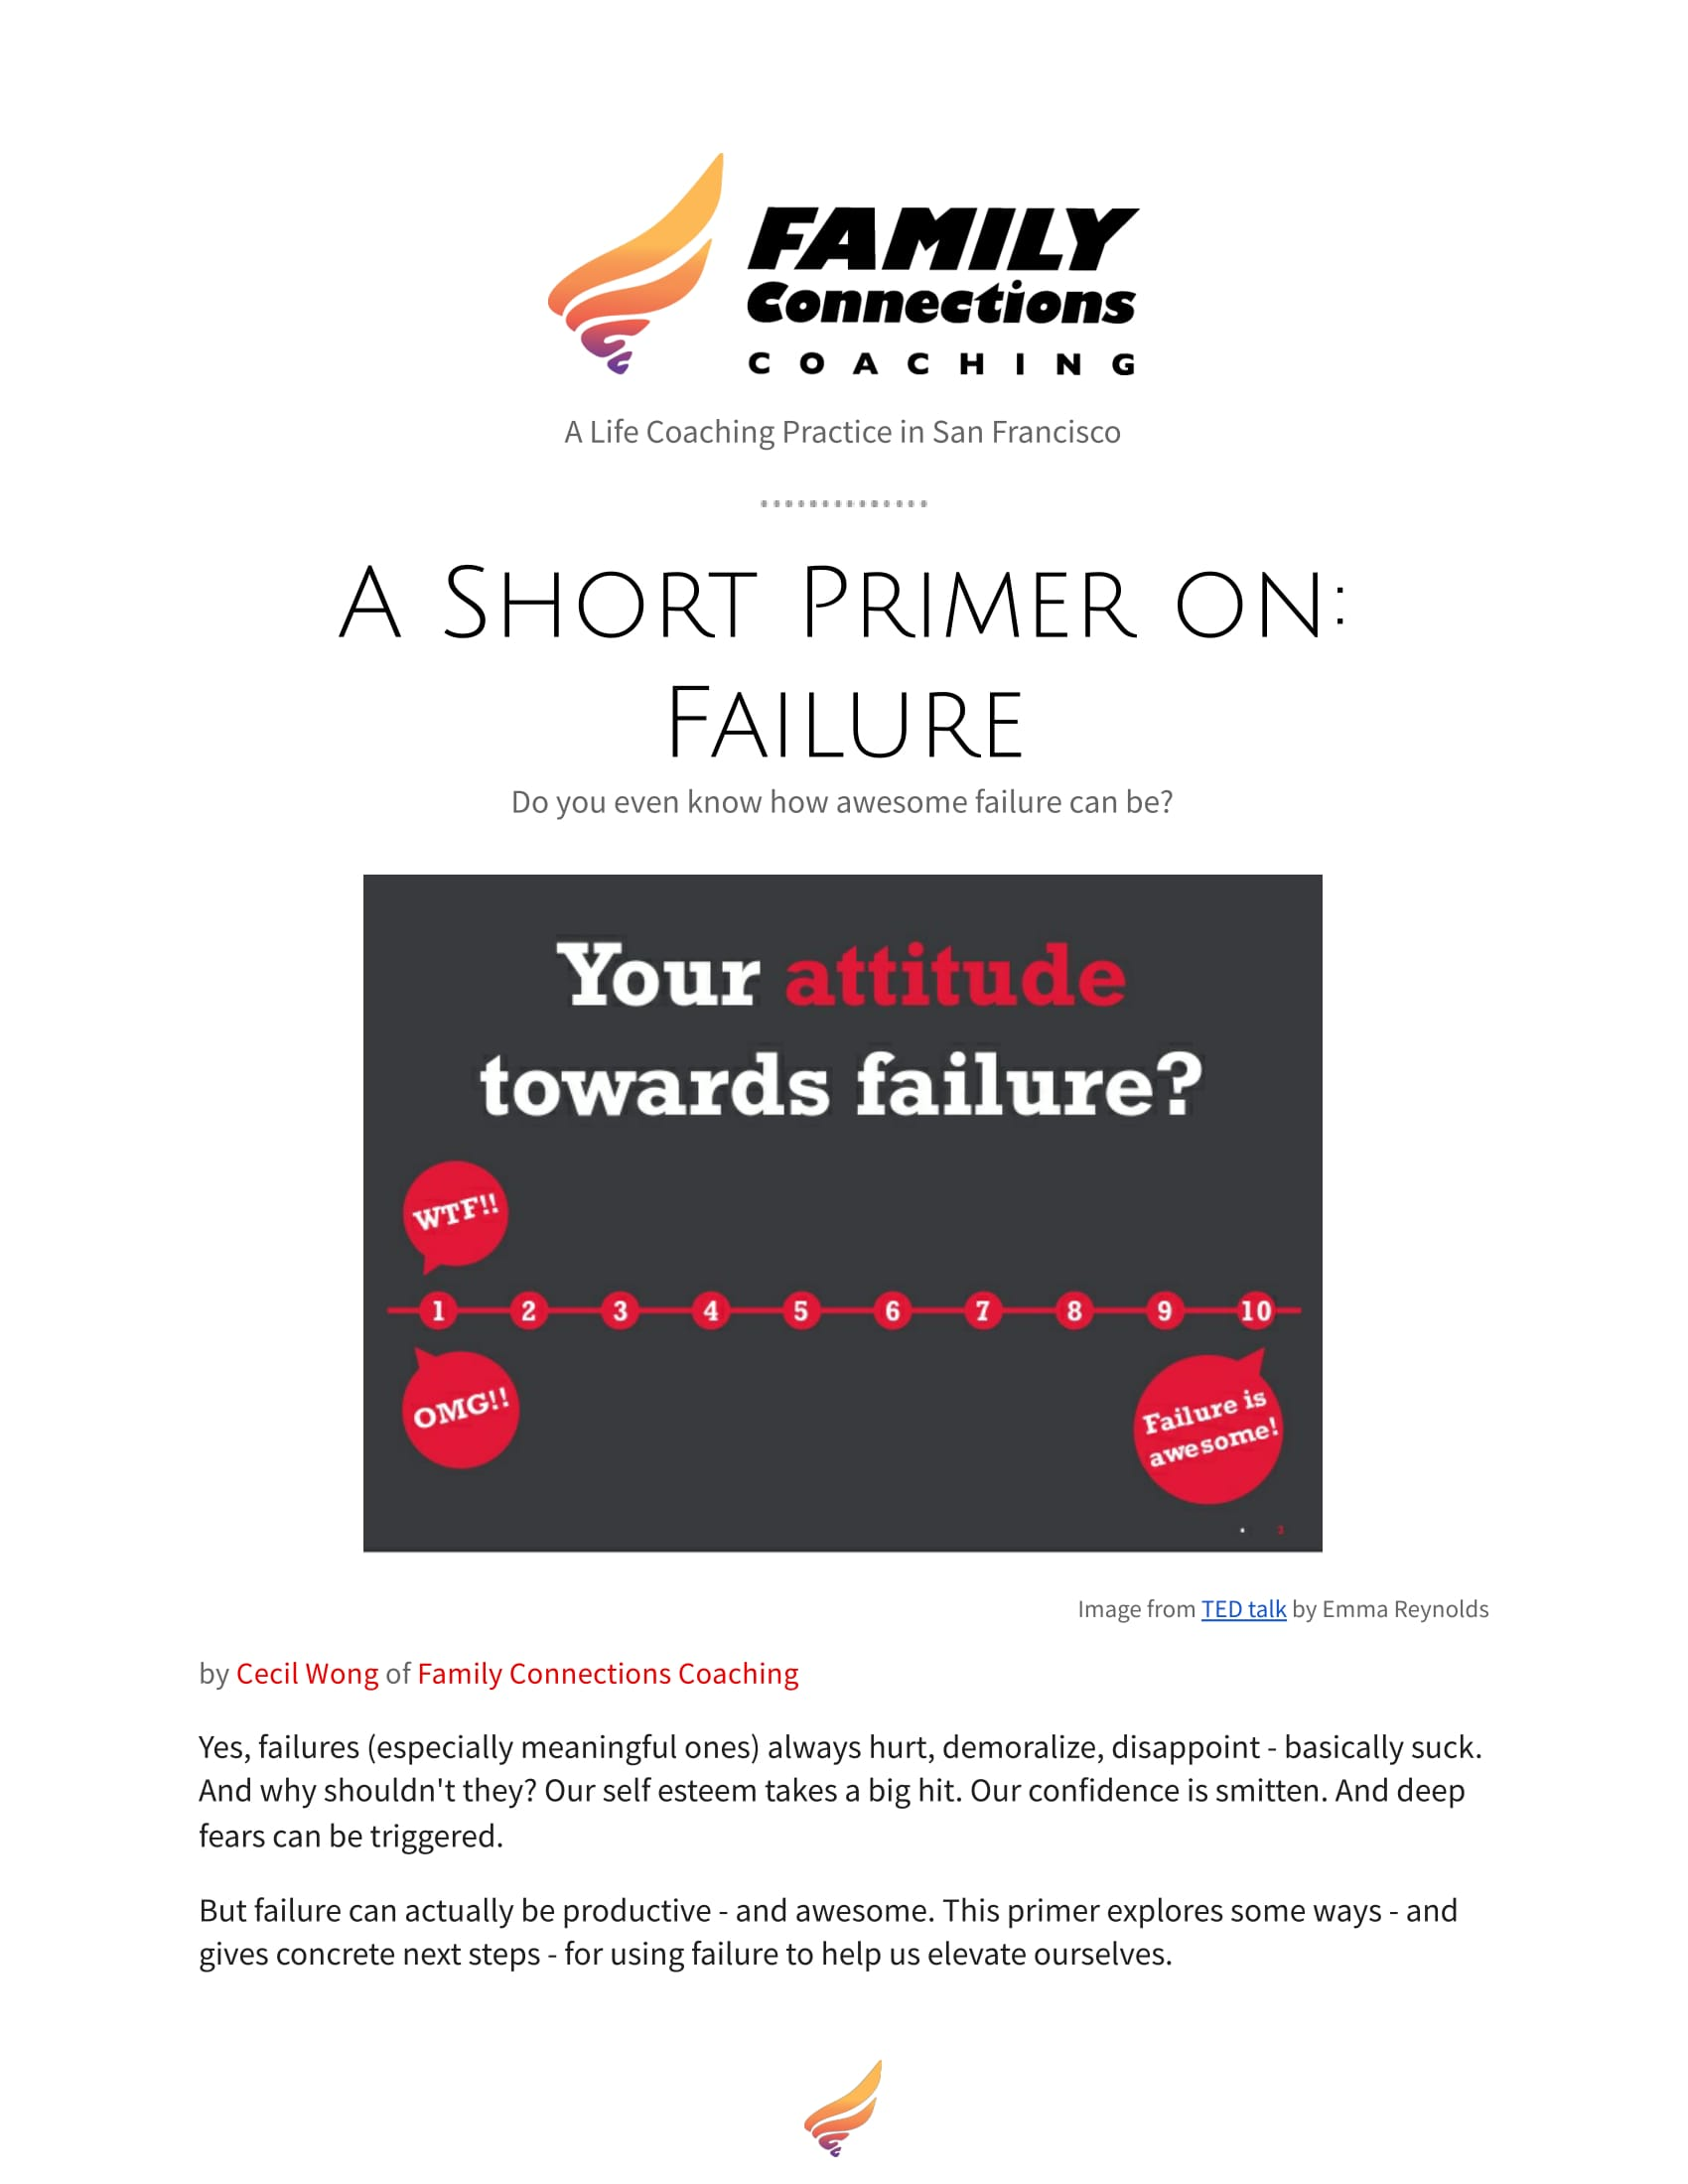 Family Connections Coaching Primer on Failure-1.jpg